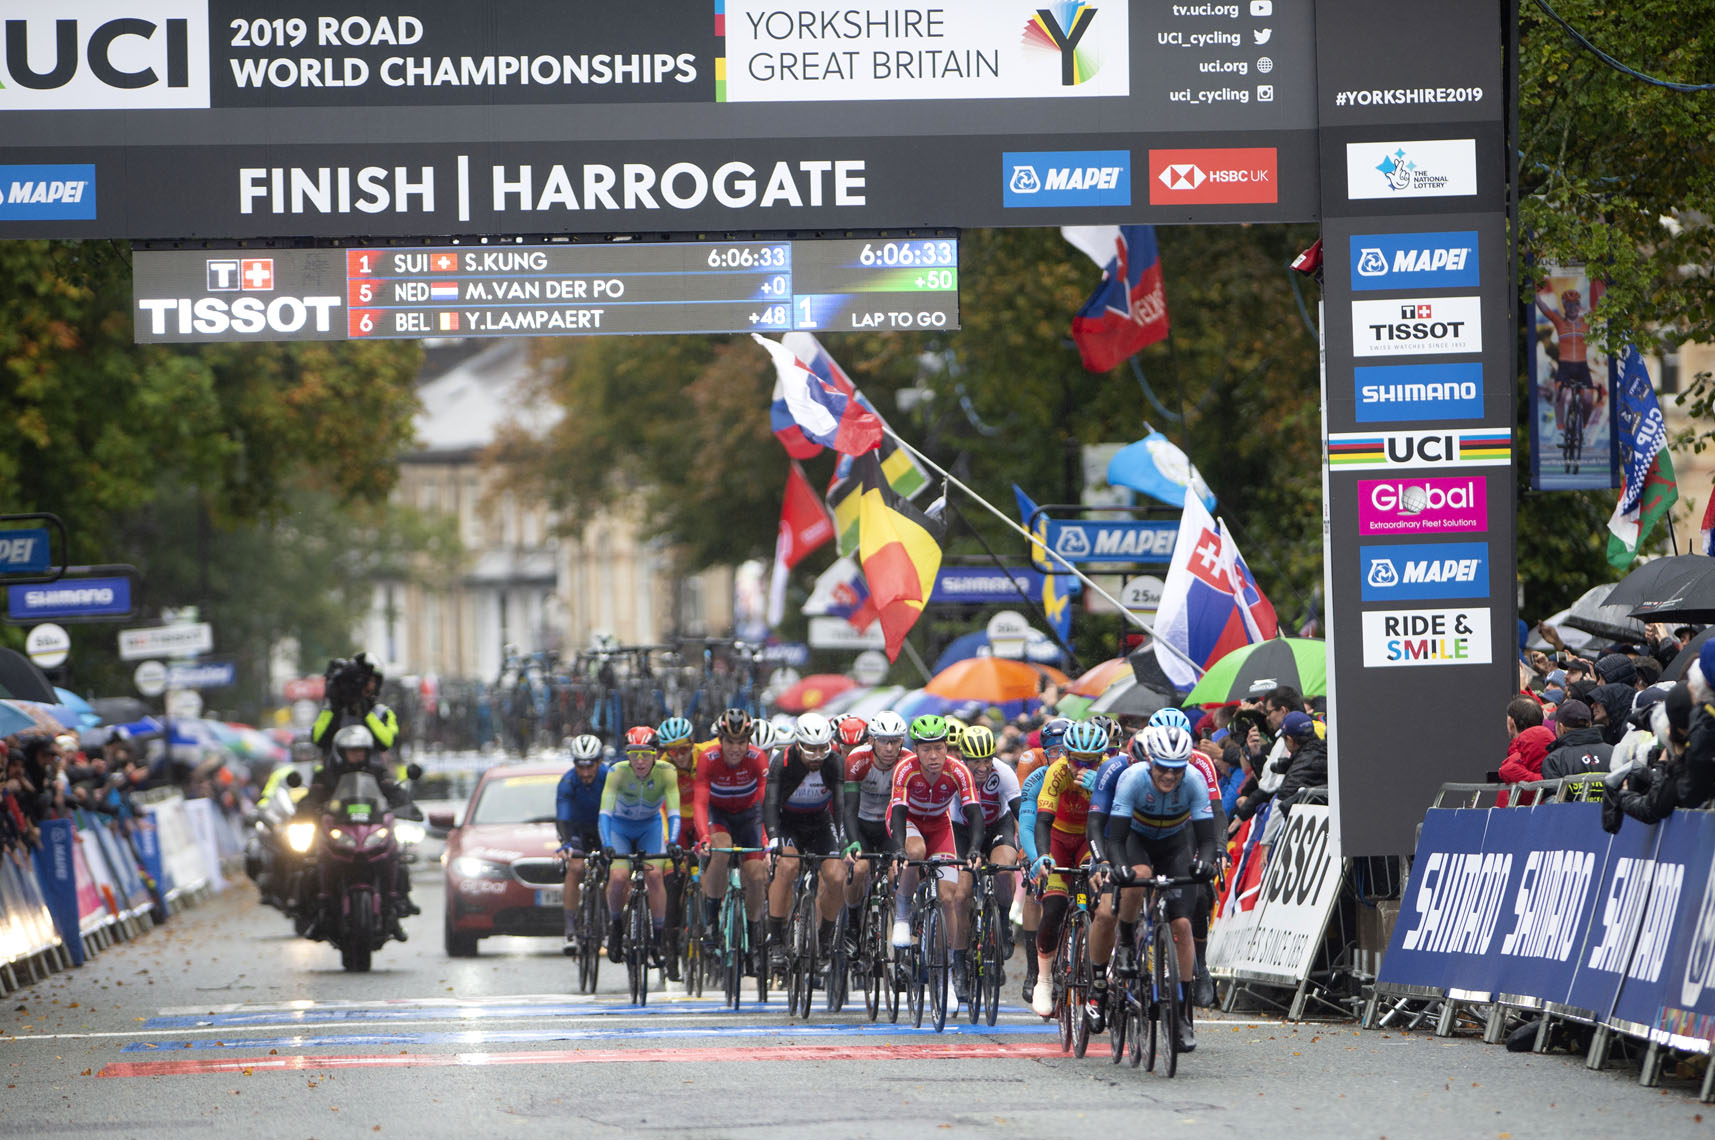 2019 UCI Road World Championships